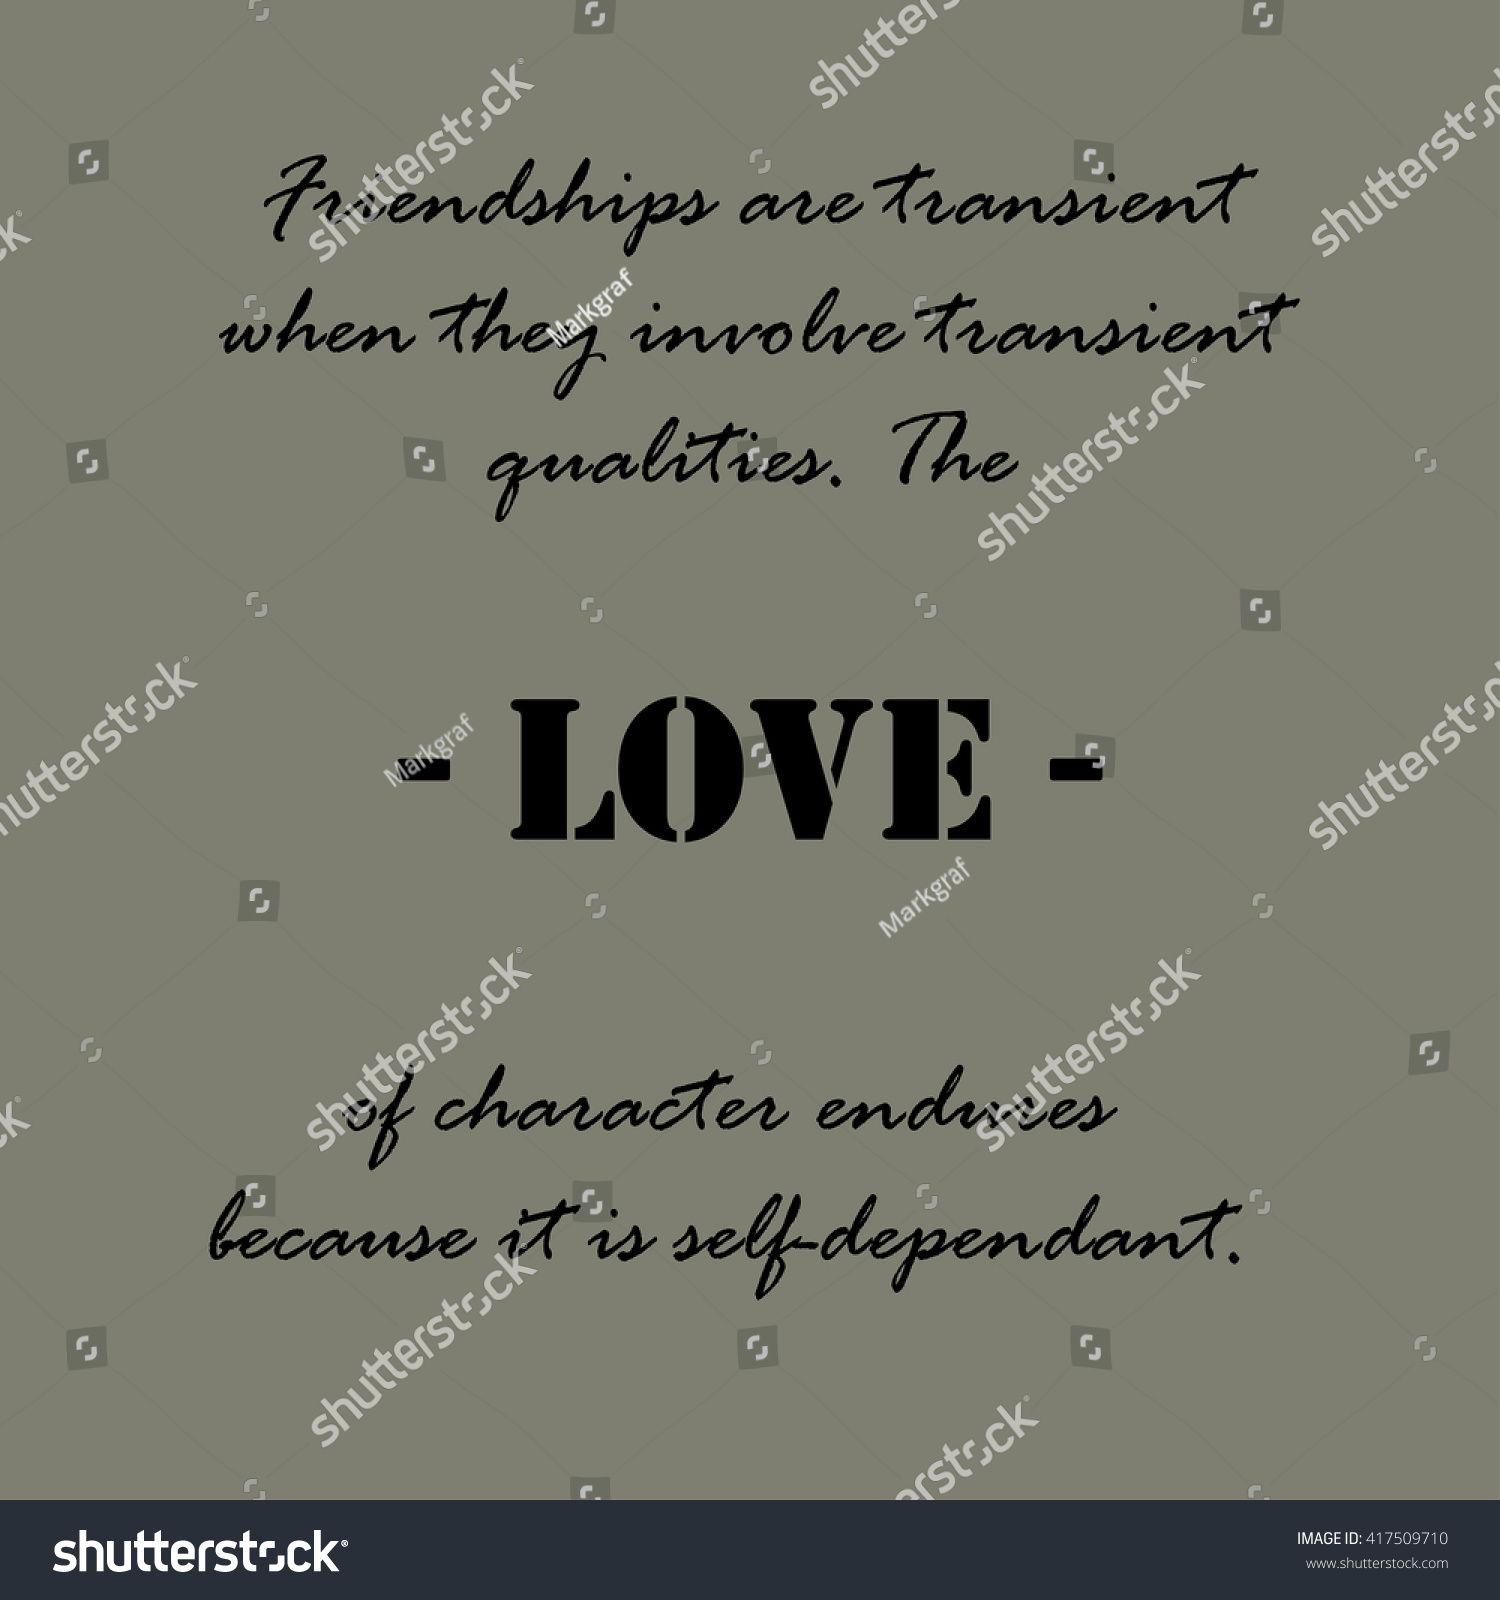 Quote About Friendships Aristotle Quotes Friendships Transient Stock Vector 417509710